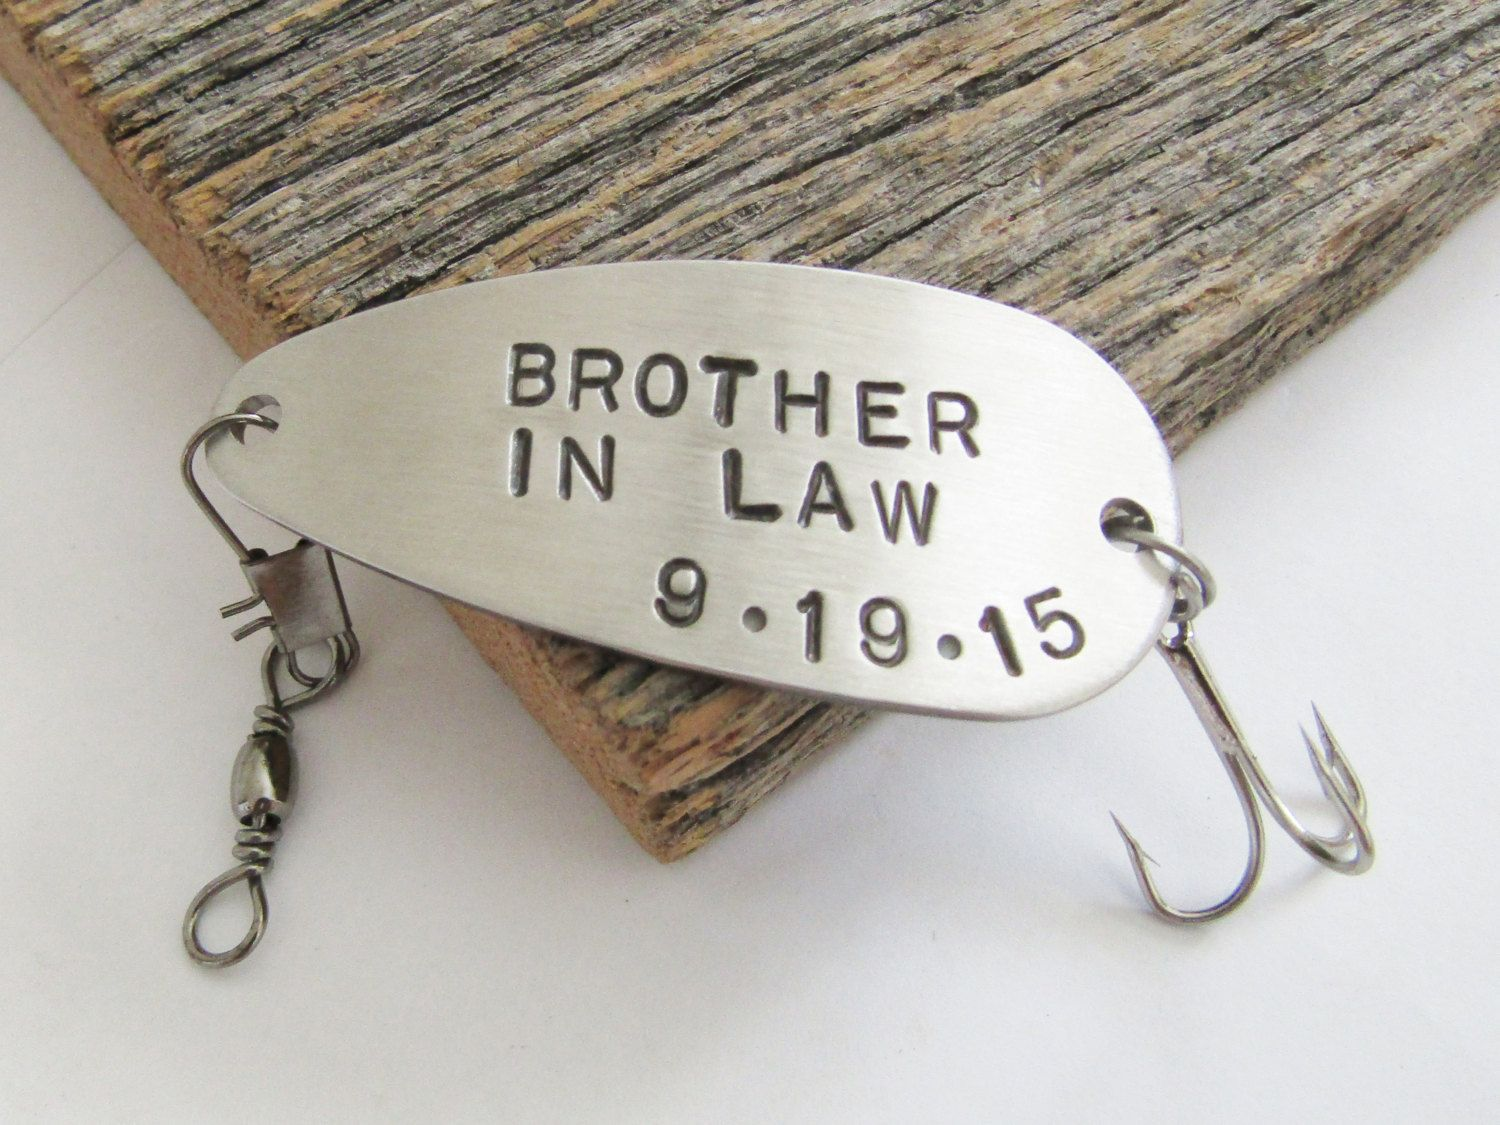 Brother In Law Gift For Wedding Of The Groom